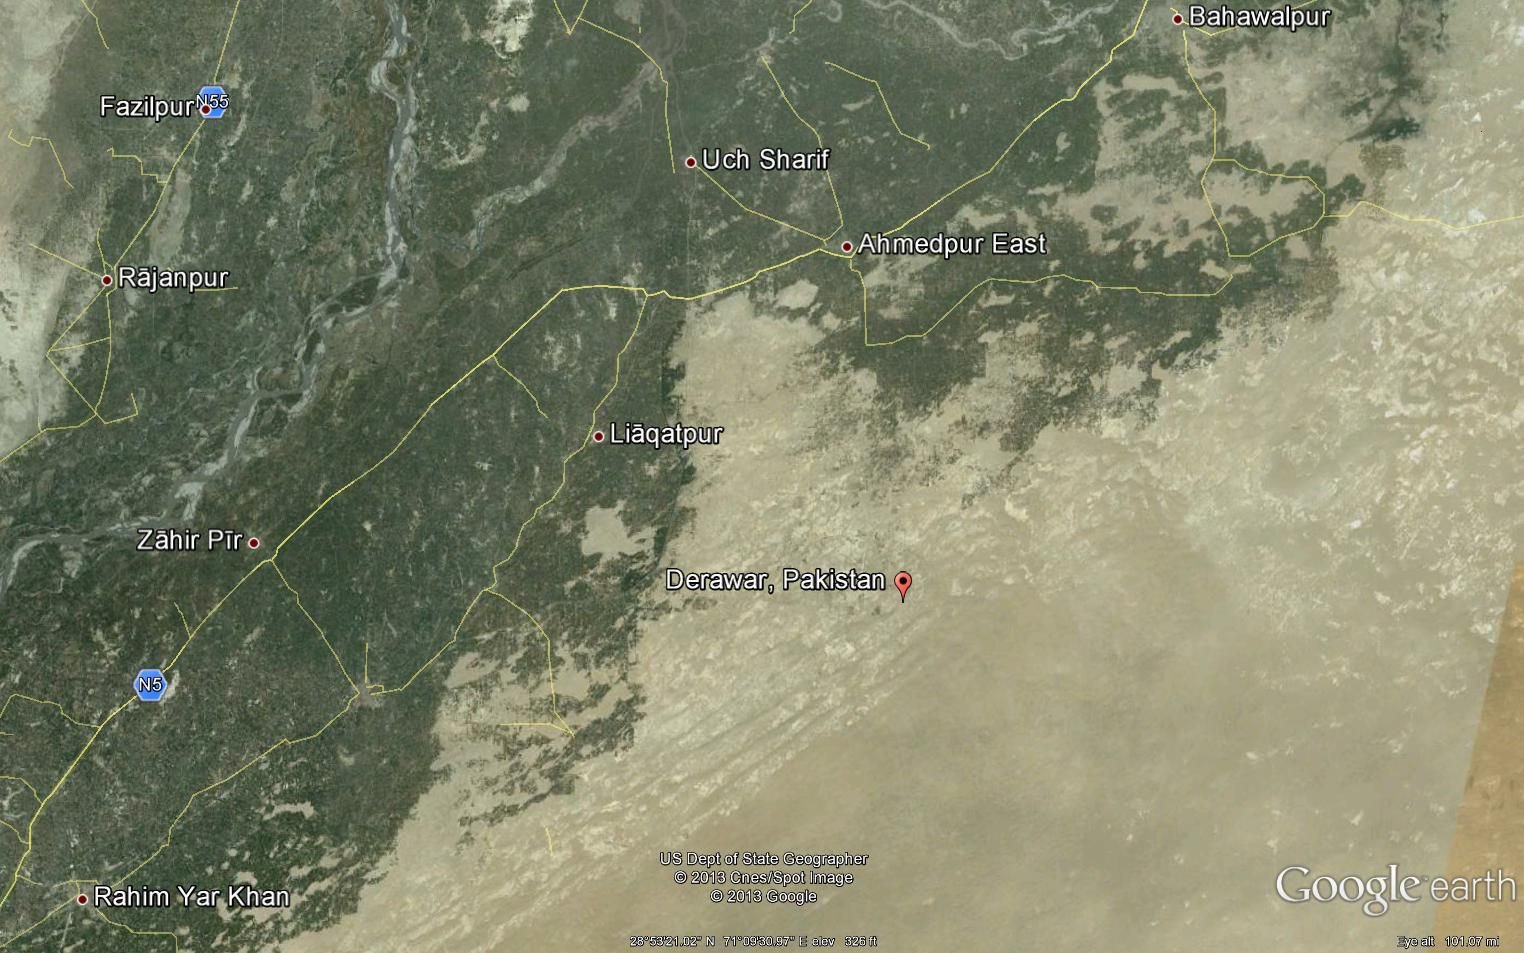 Bahawalpur Map Google